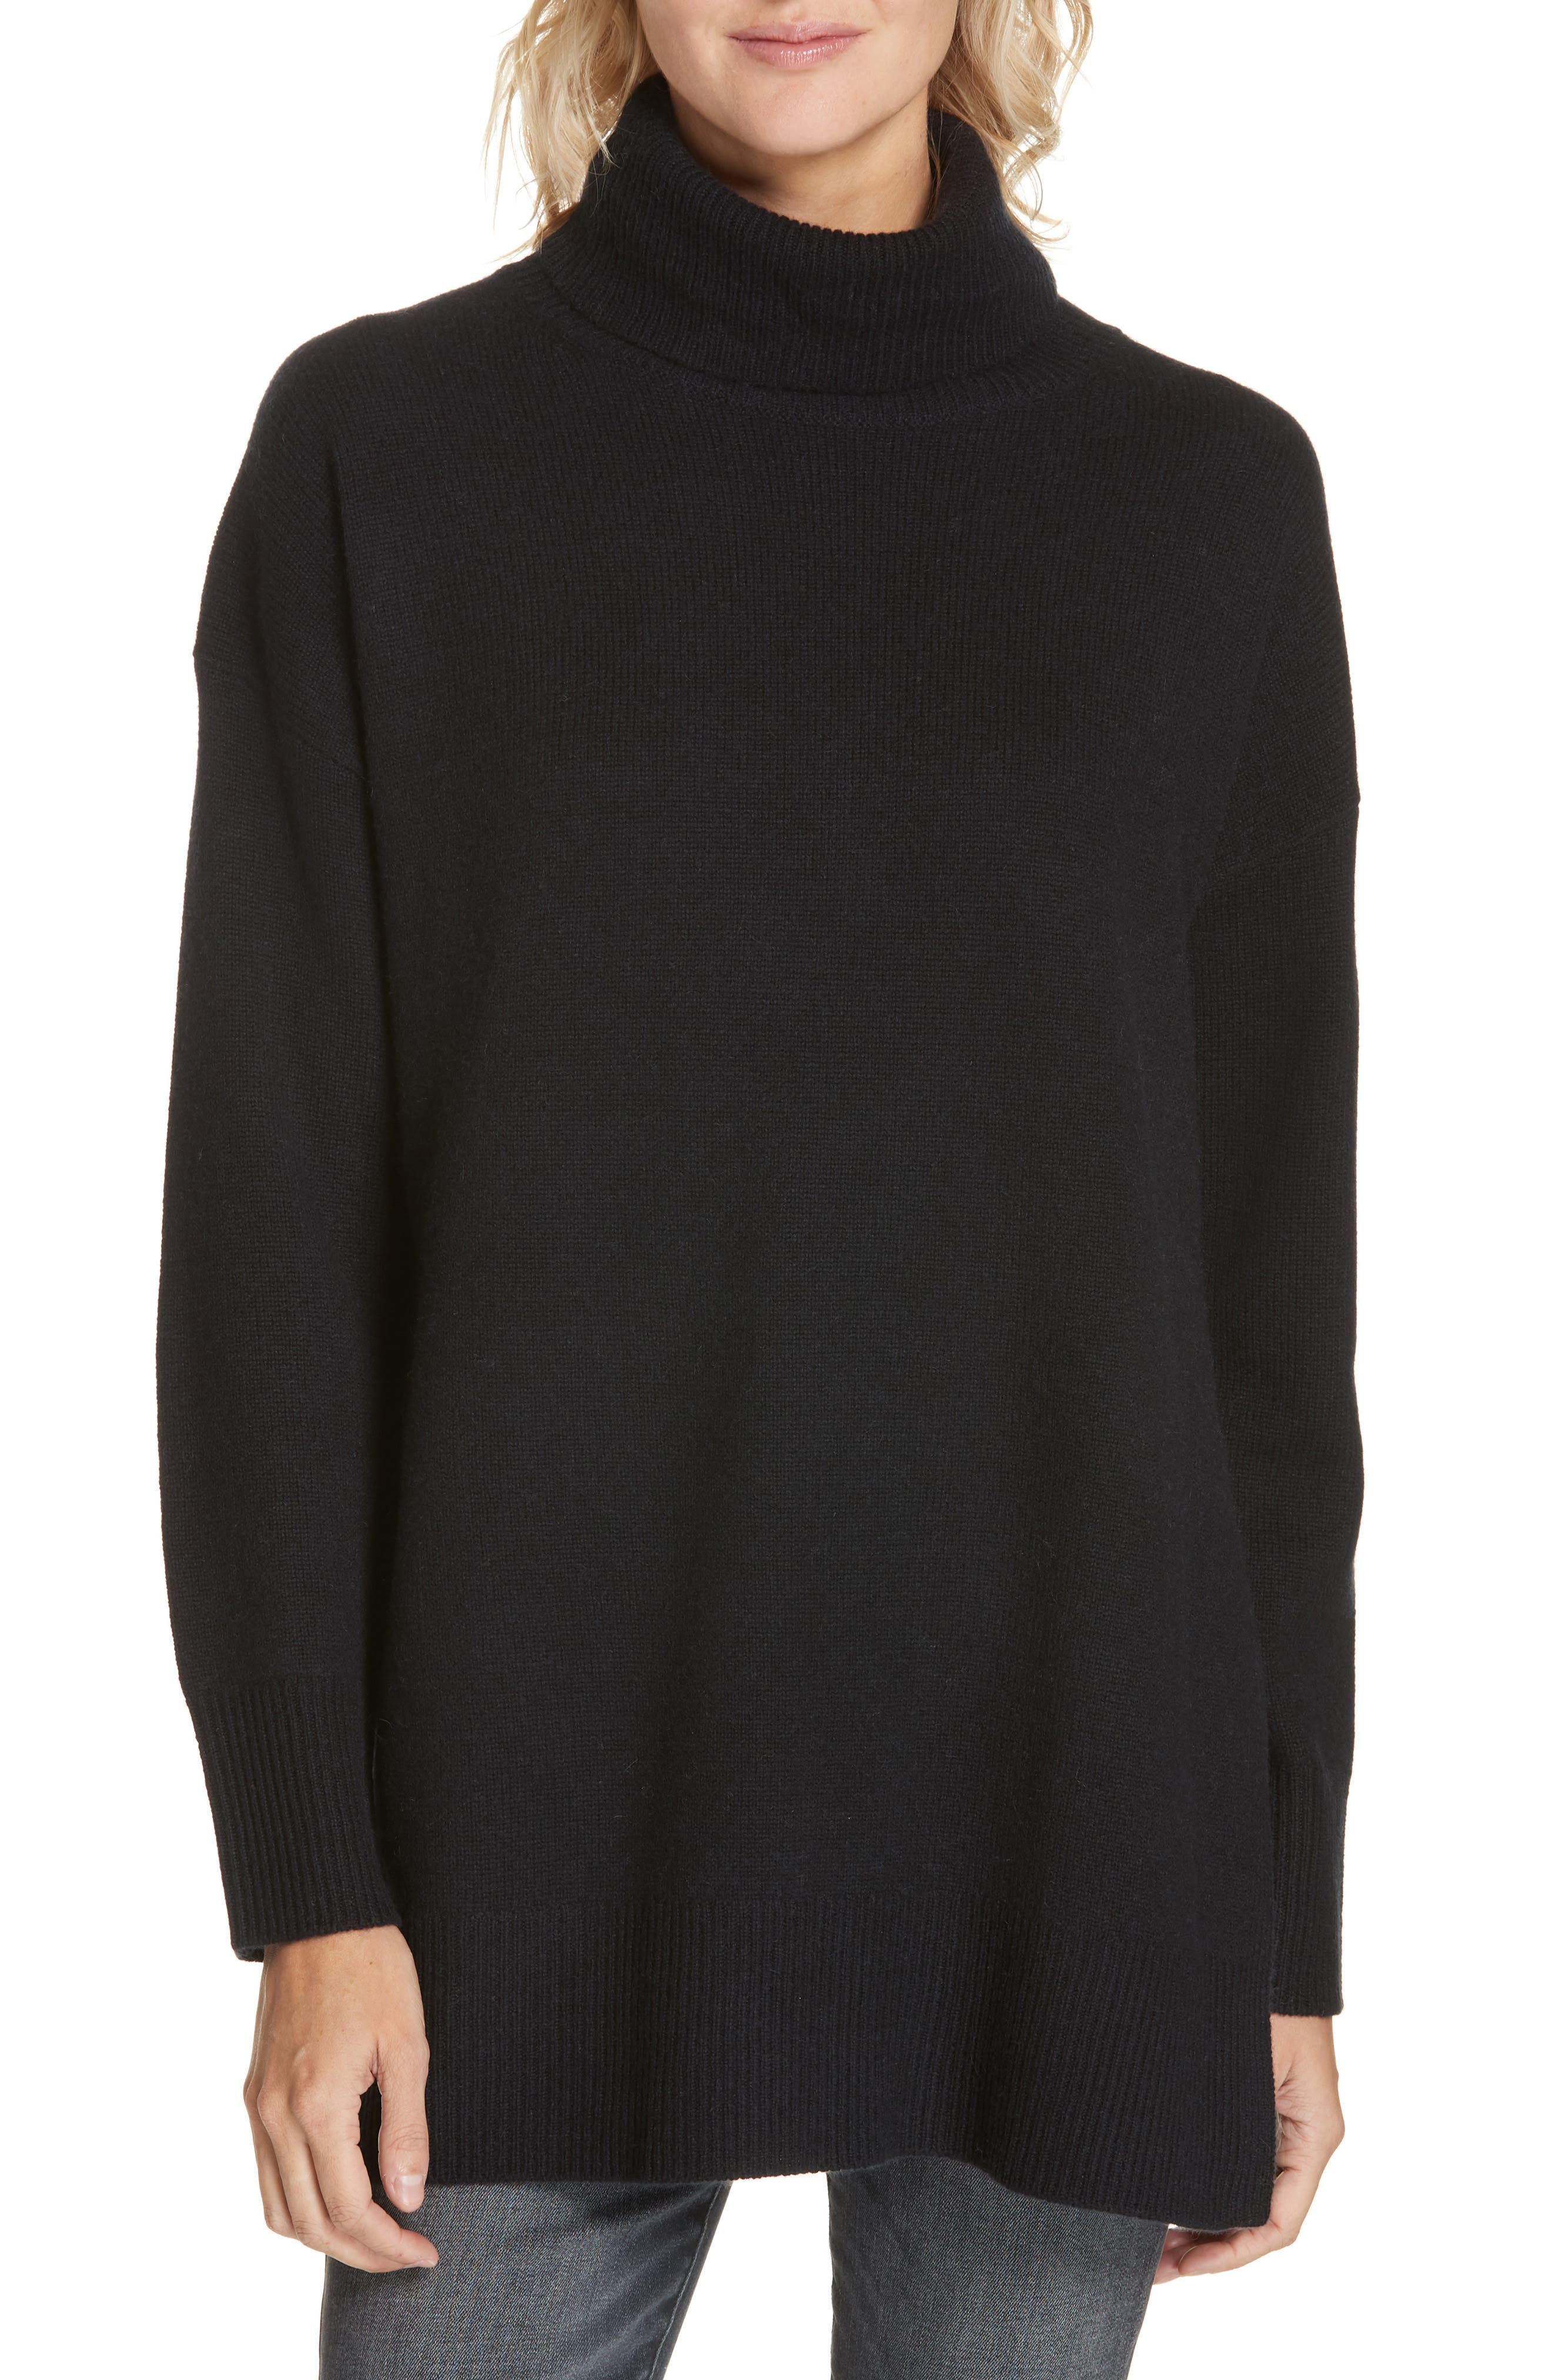 NORDSTROM SIGNATURE,                             Cashmere Turtleneck Pullover,                             Main thumbnail 1, color,                             001